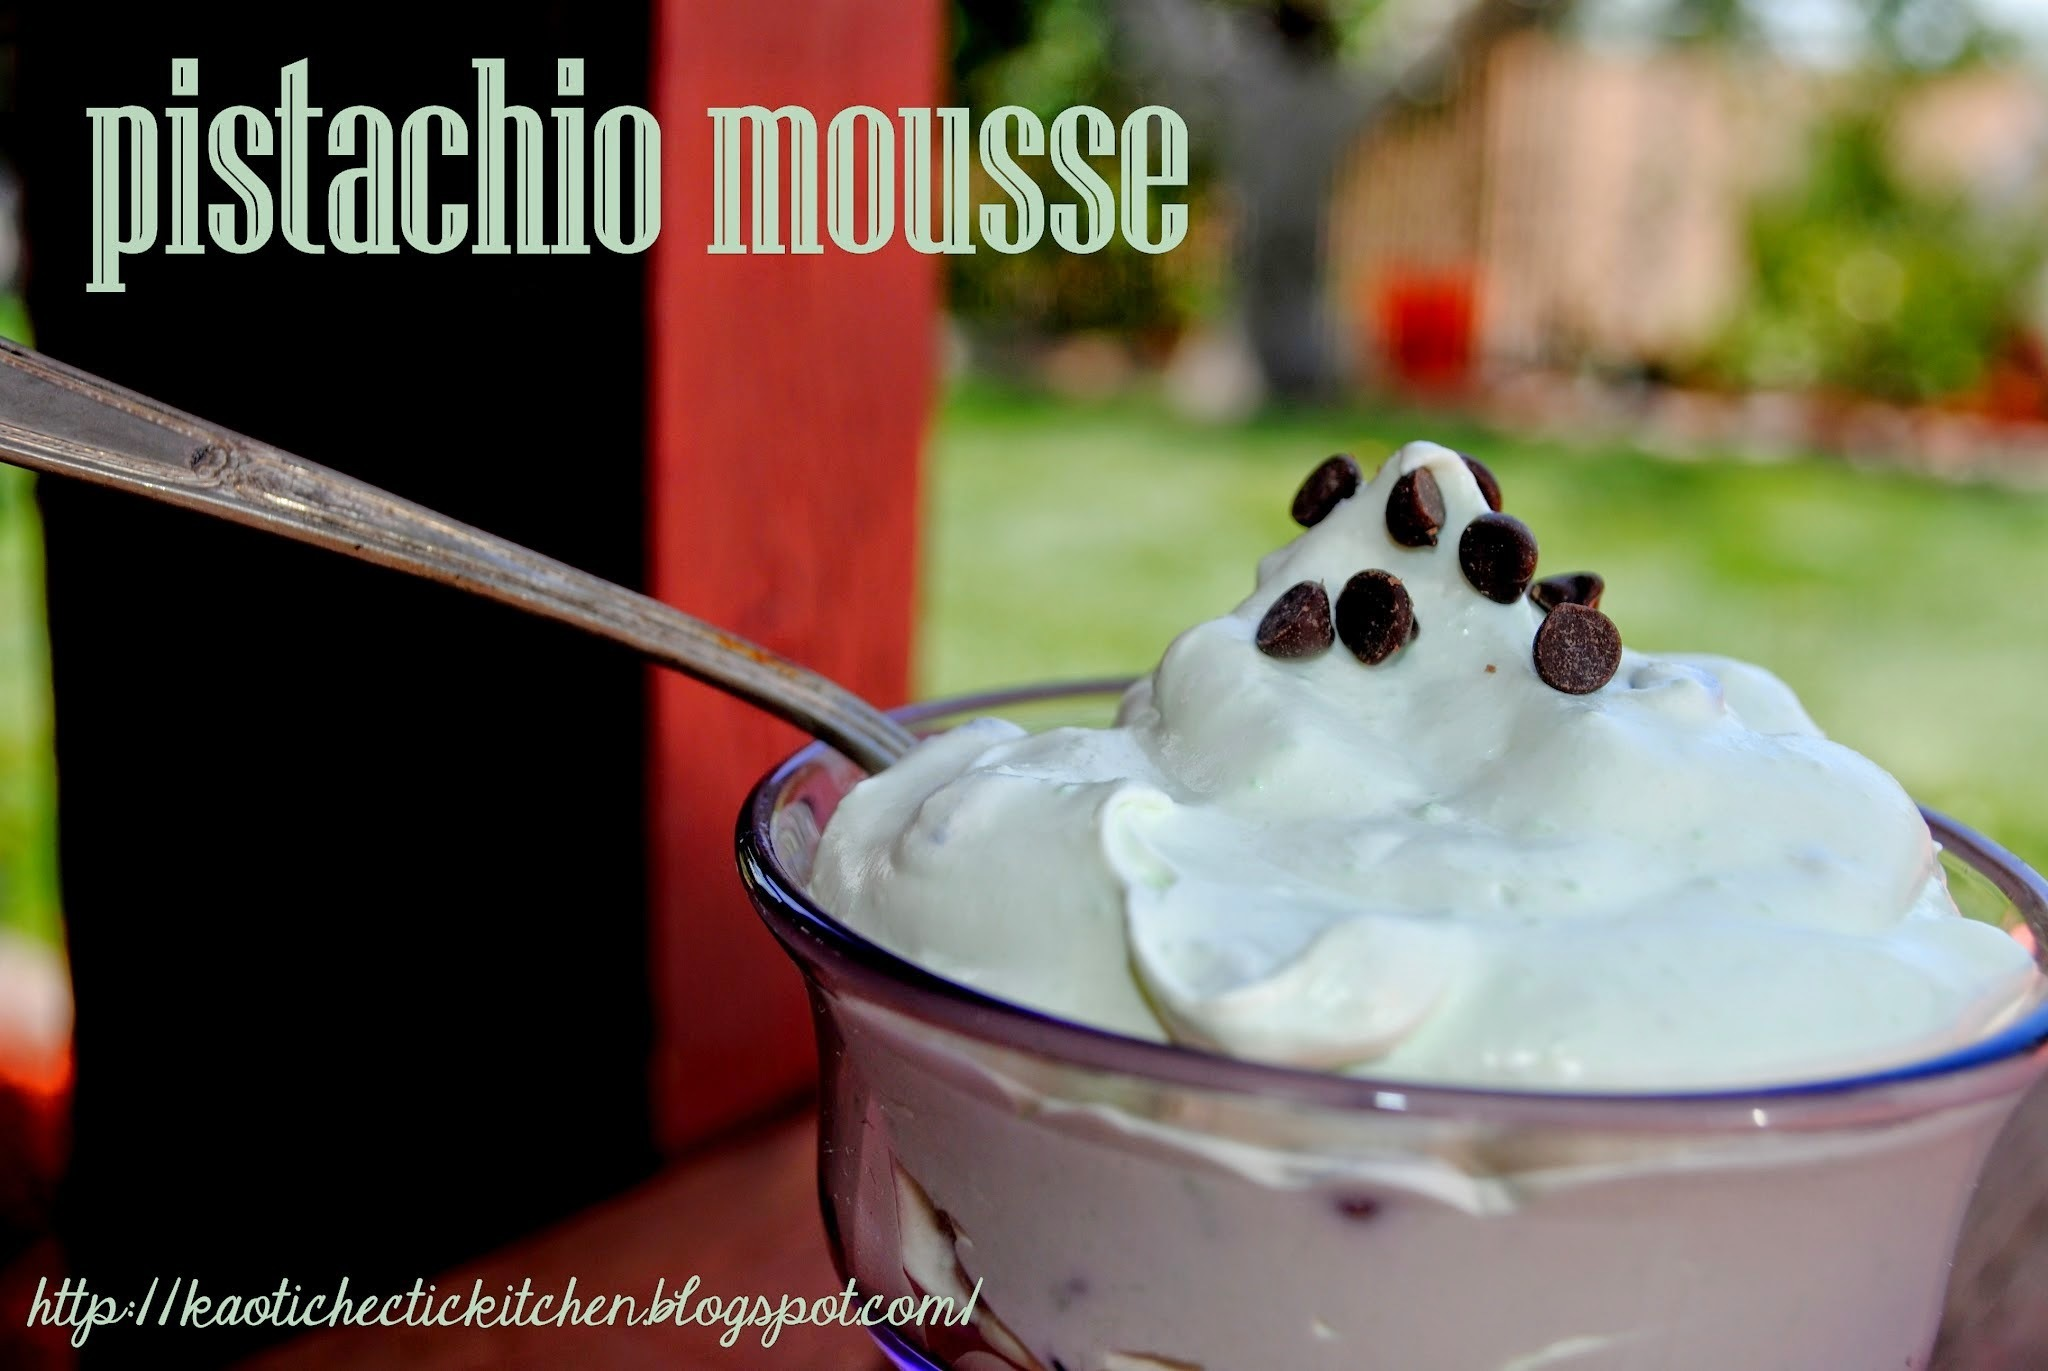 recipe roulette - pistachio mousse and pistachio mousse casserole..